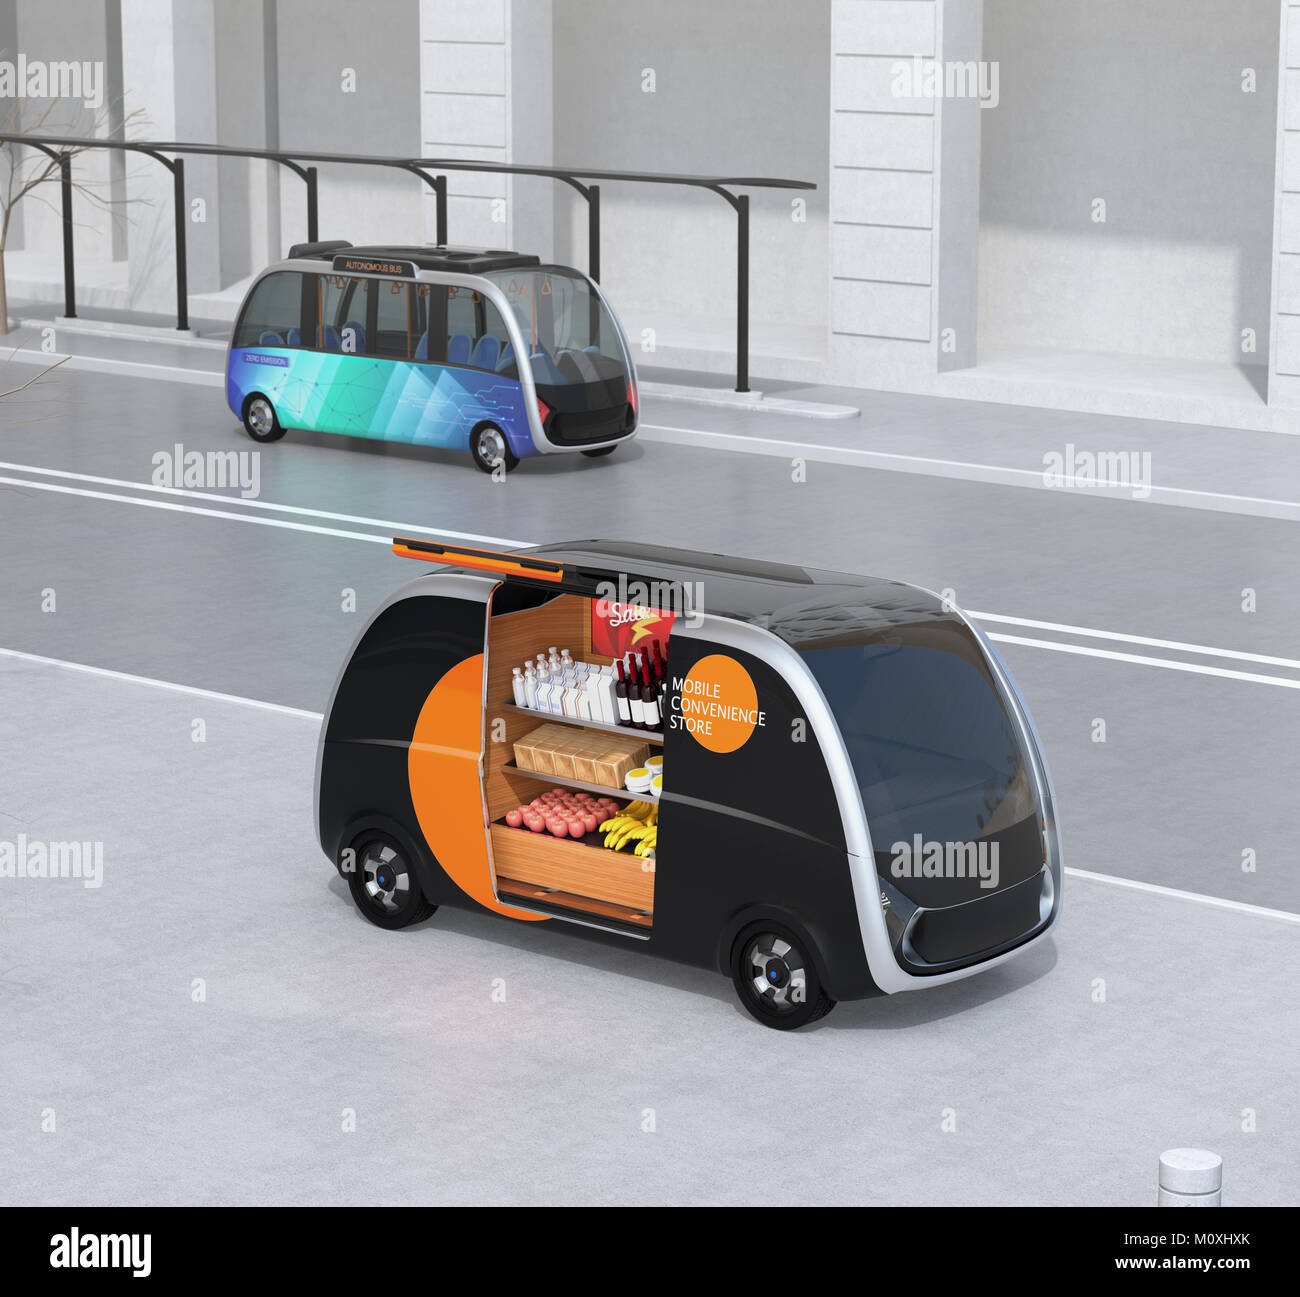 driverless bus stockfotos driverless bus bilder alamy. Black Bedroom Furniture Sets. Home Design Ideas